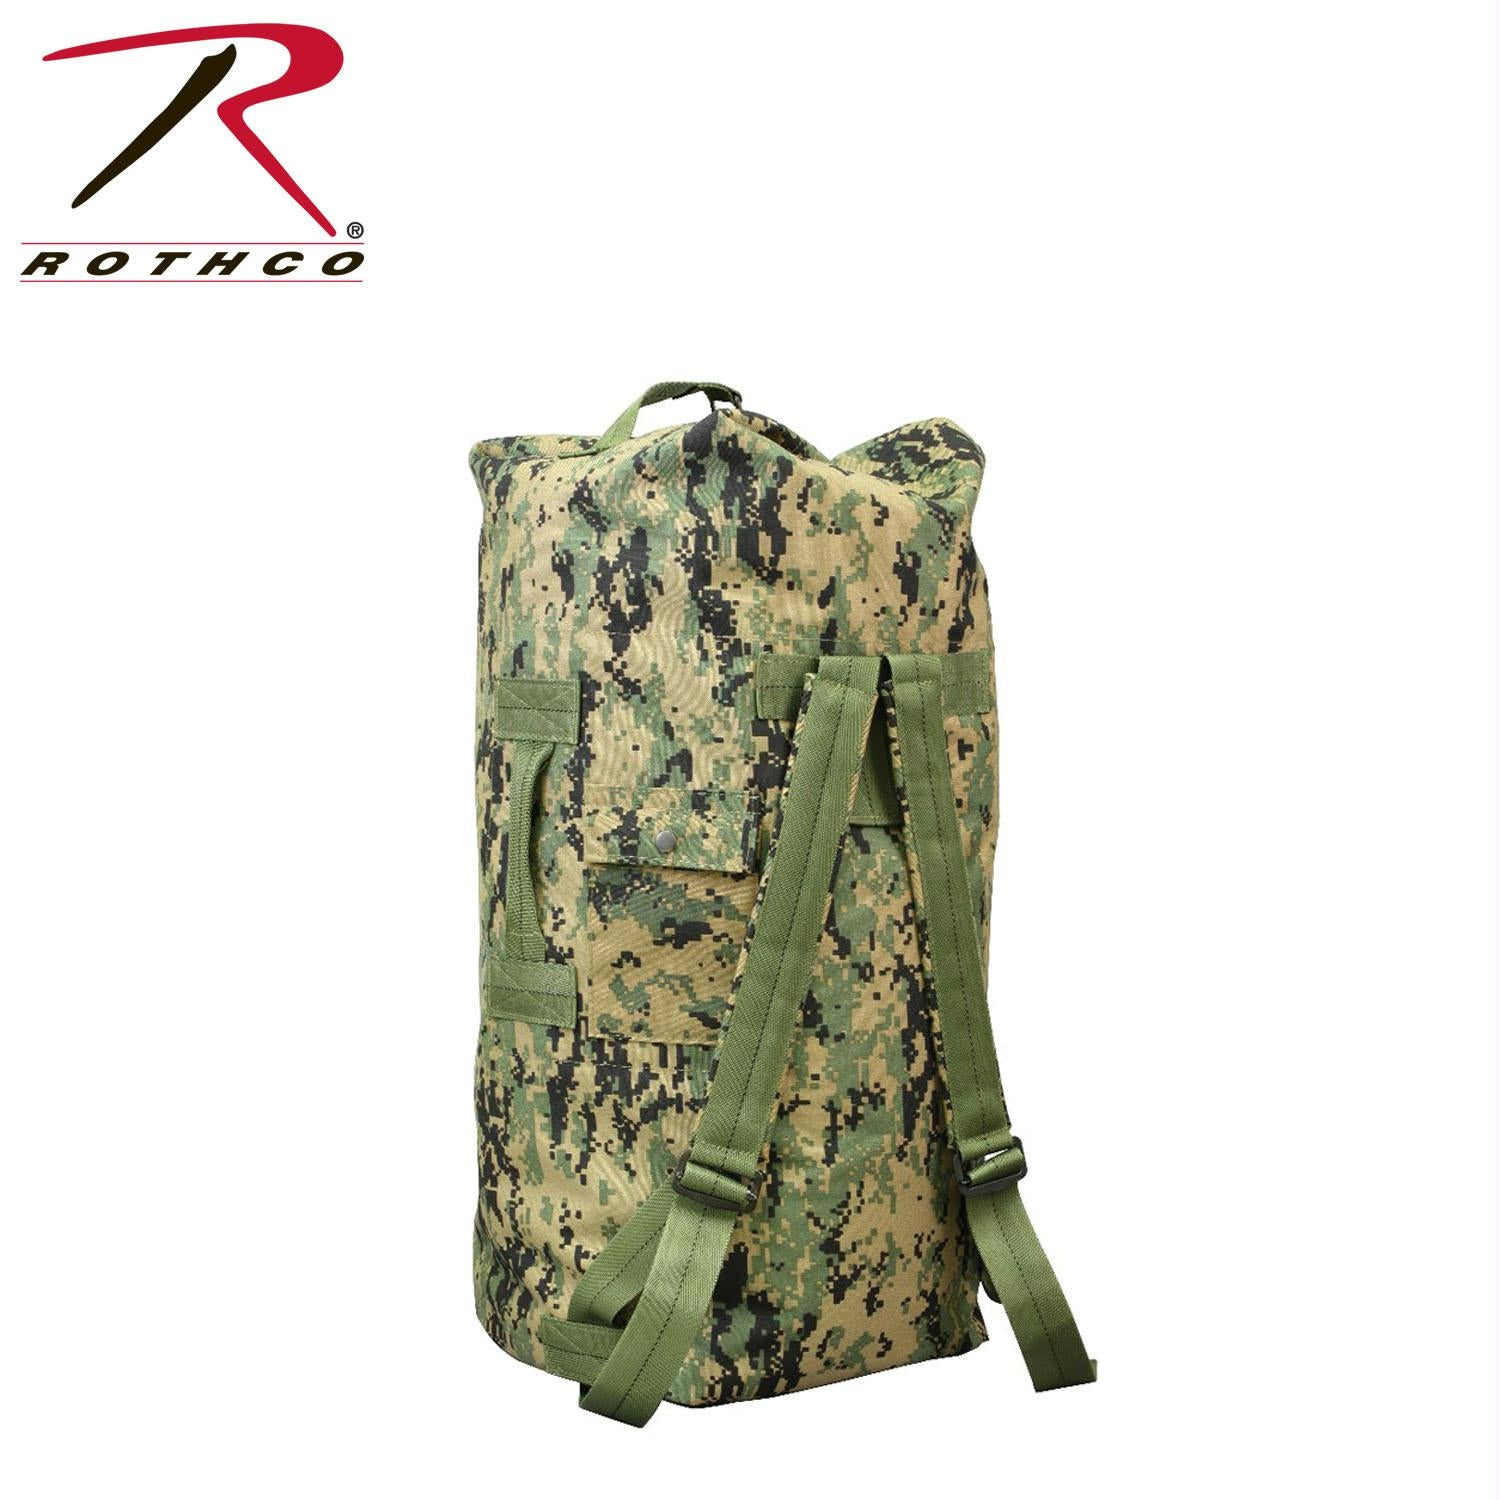 Rothco G.I. Type Enhanced Double Strap Duffle Bag - Woodland Digital Camo